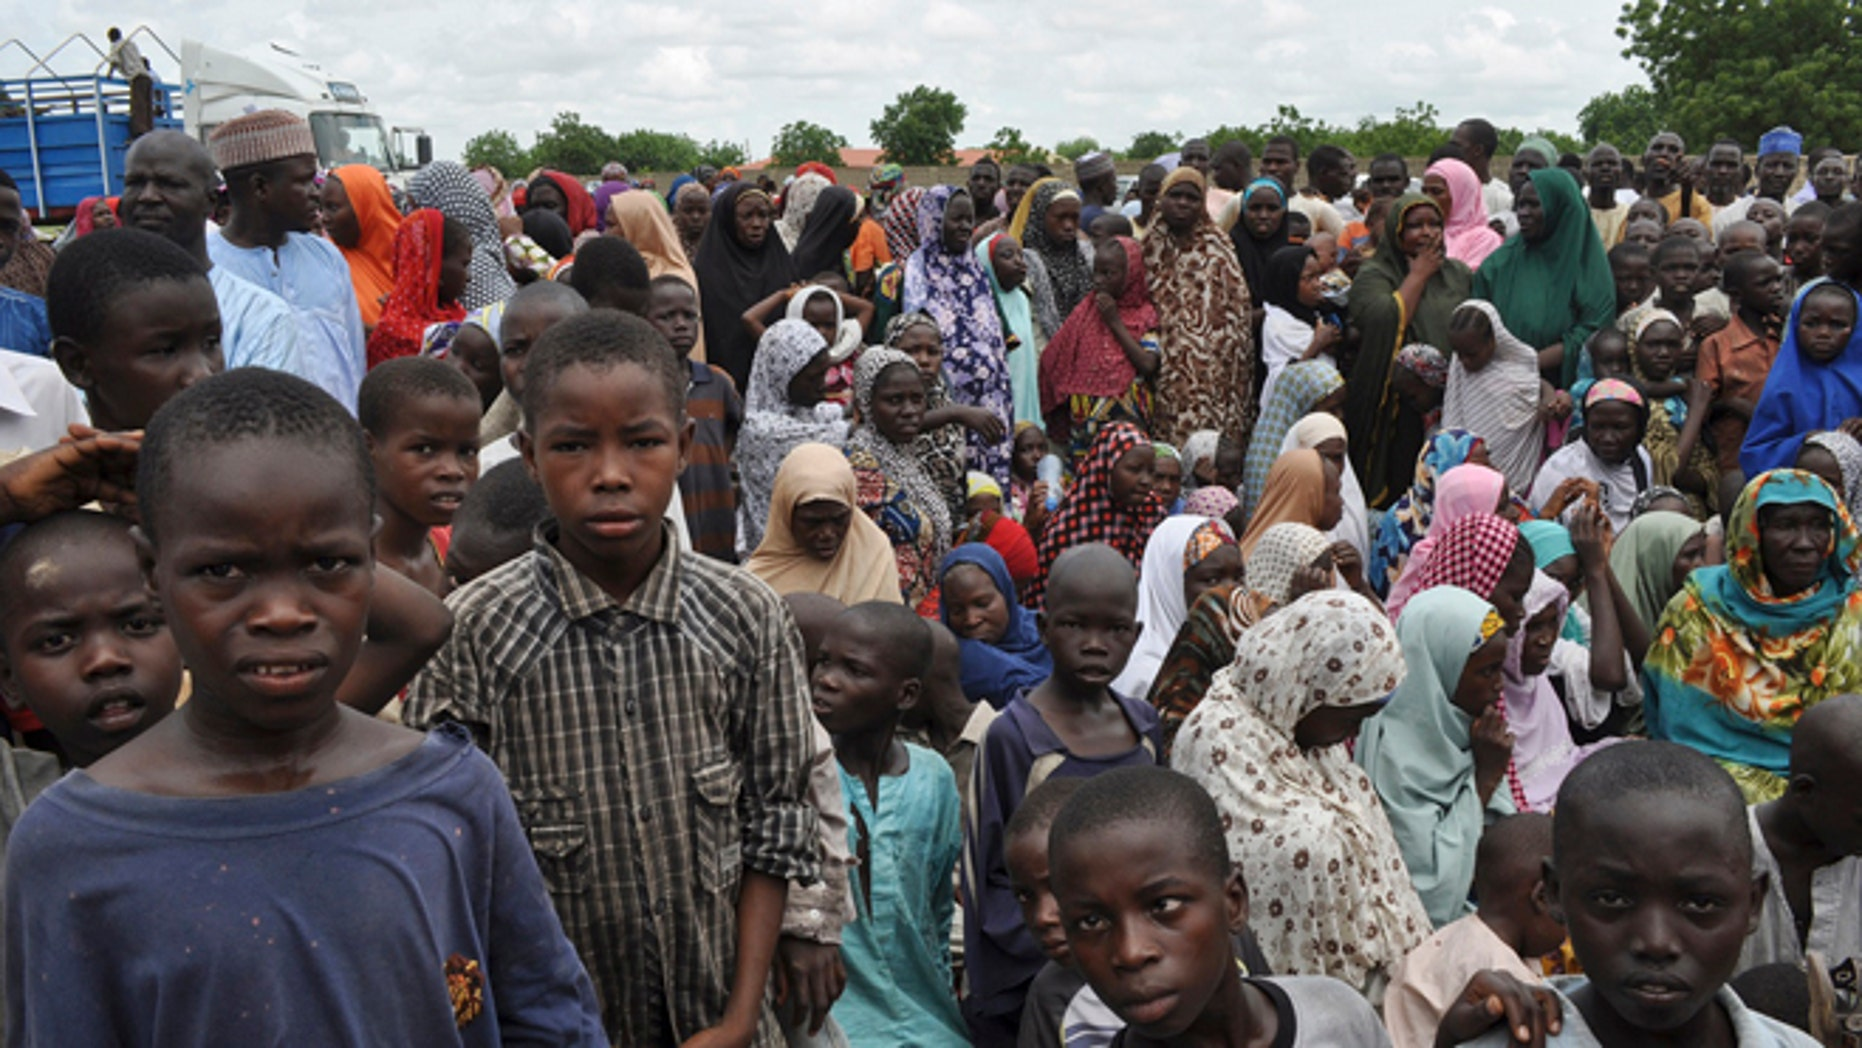 Sept. 9, 2014: Civilians who fled their homes following an attack by Islamist militants in Bama take refuge at a school in Maiduguri, Nigeria.